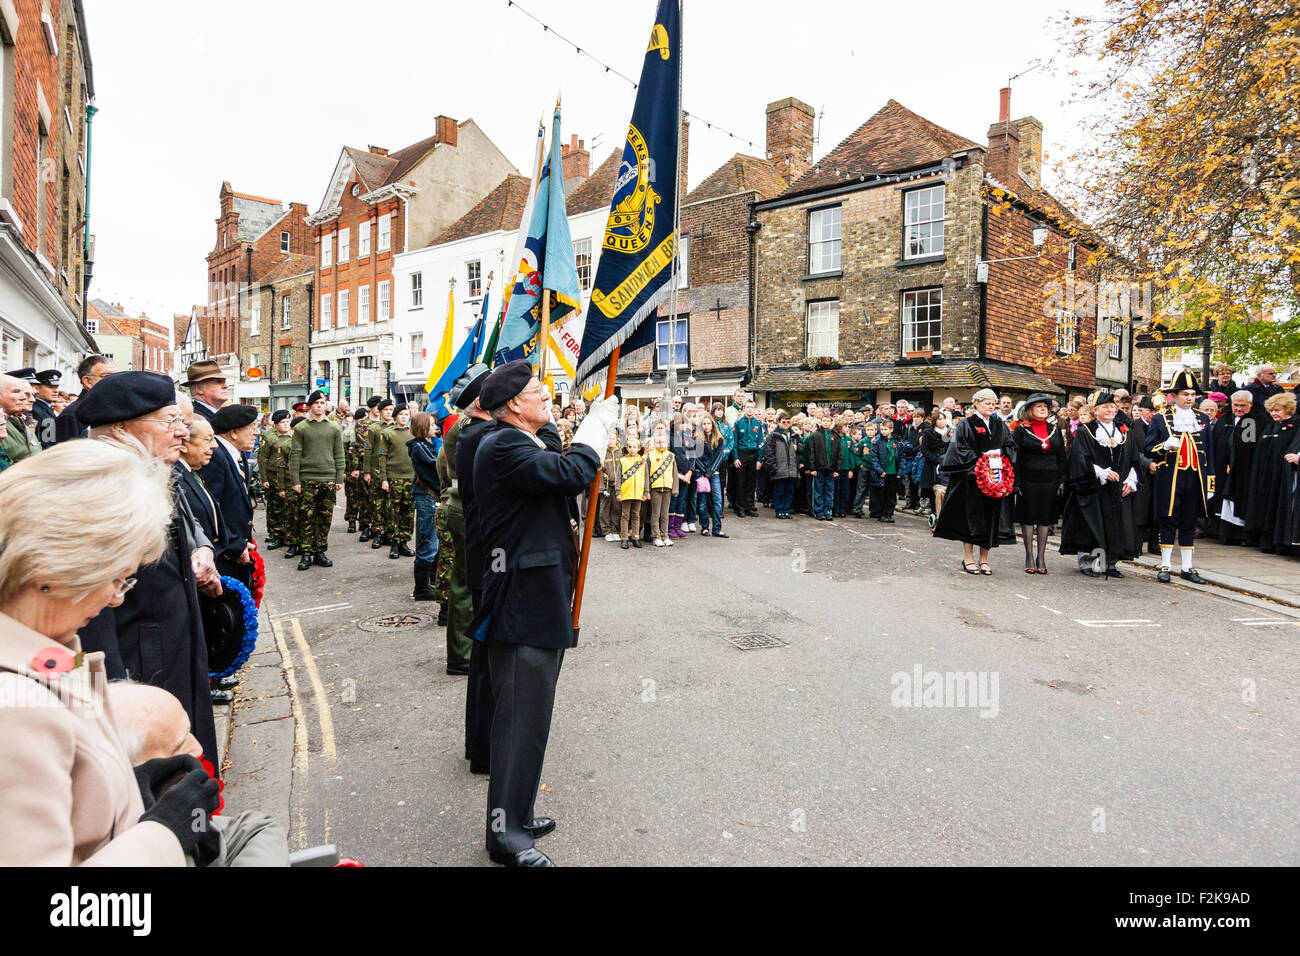 England, Sandwich. Remembrance Sunday. Ex-servicemen standing holding regimental flags during silence in town square - Stock Image